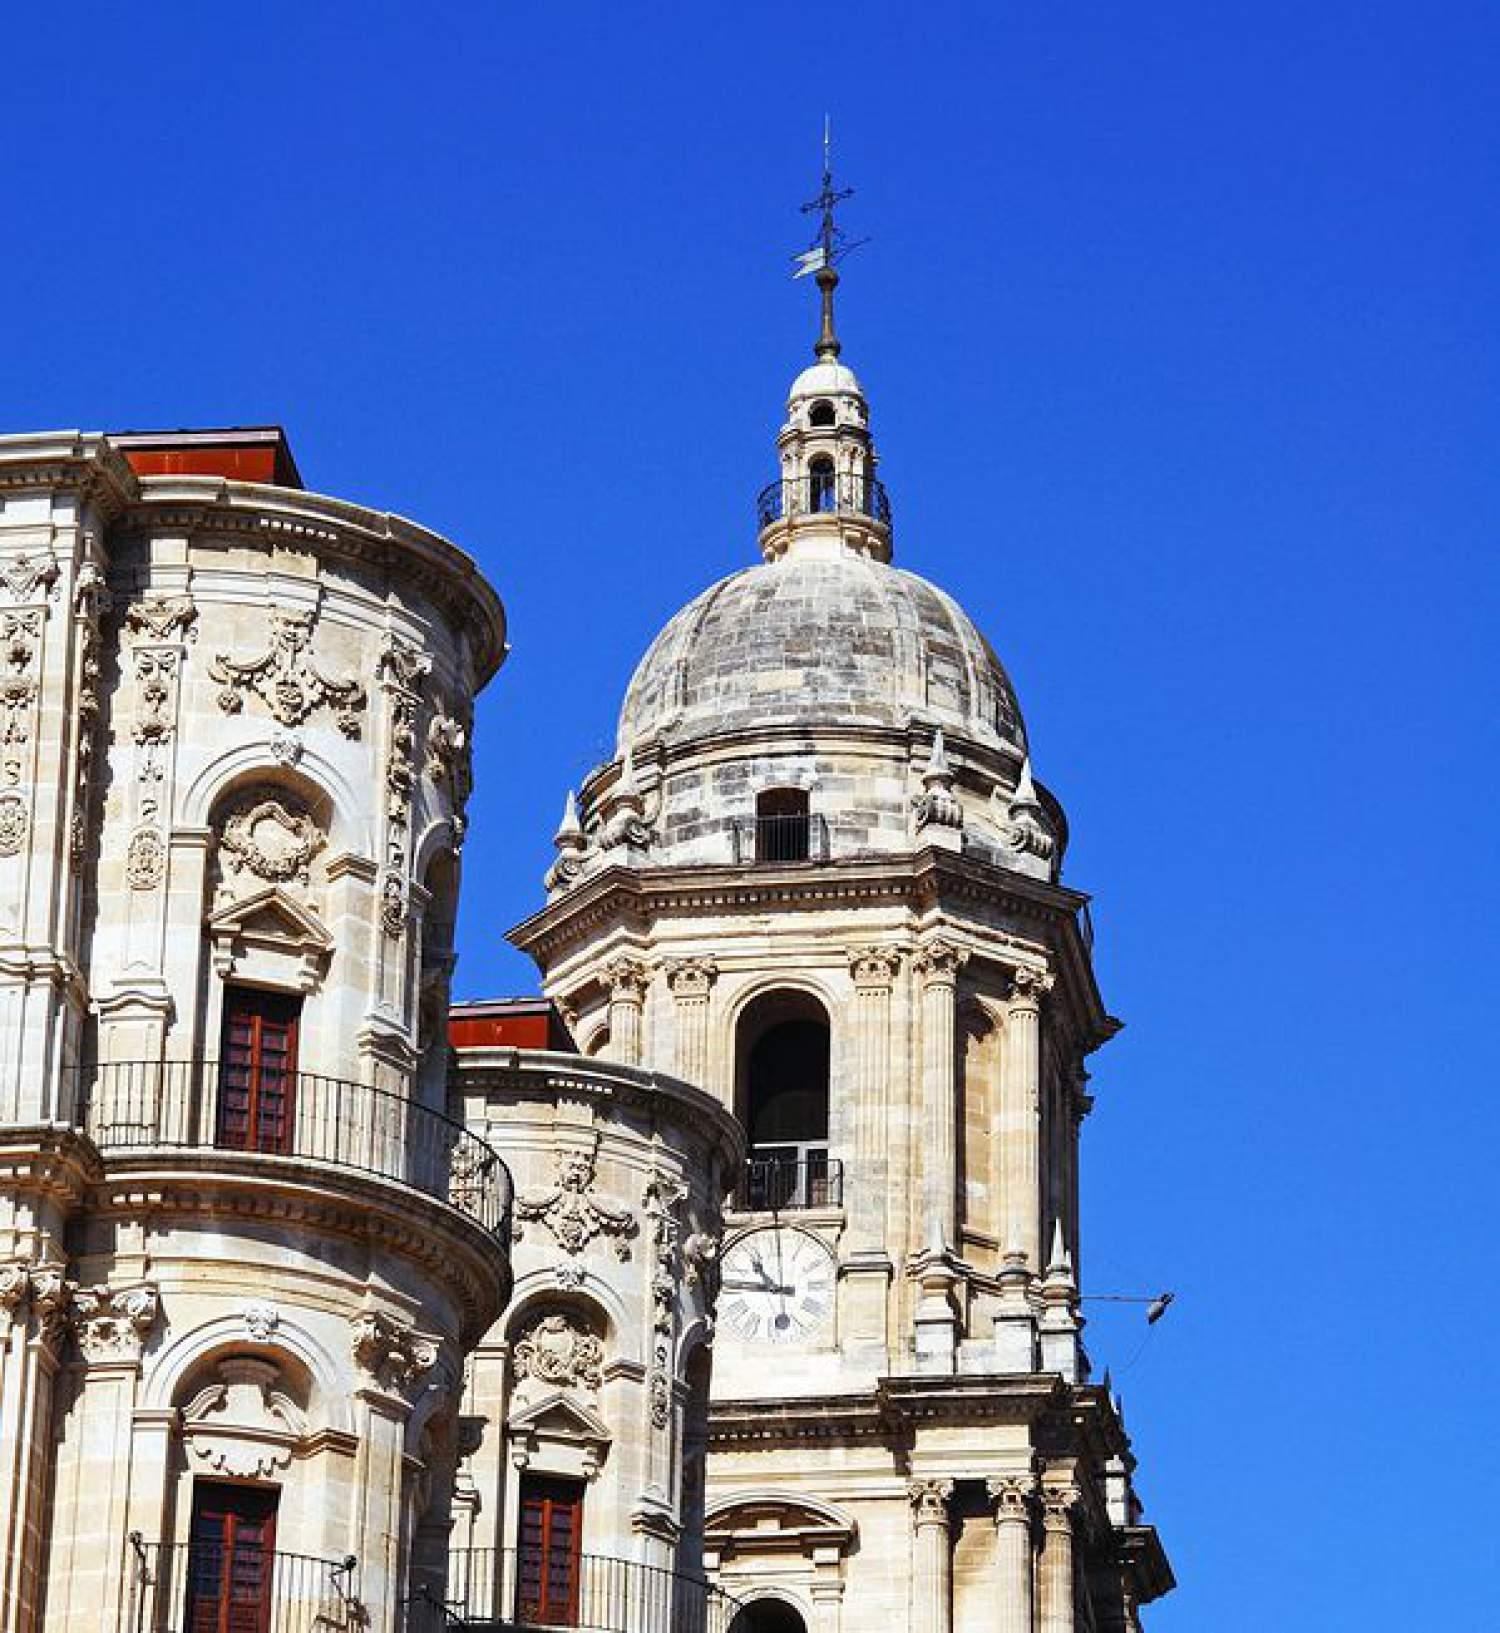 Malaga and its old architecture, Spain